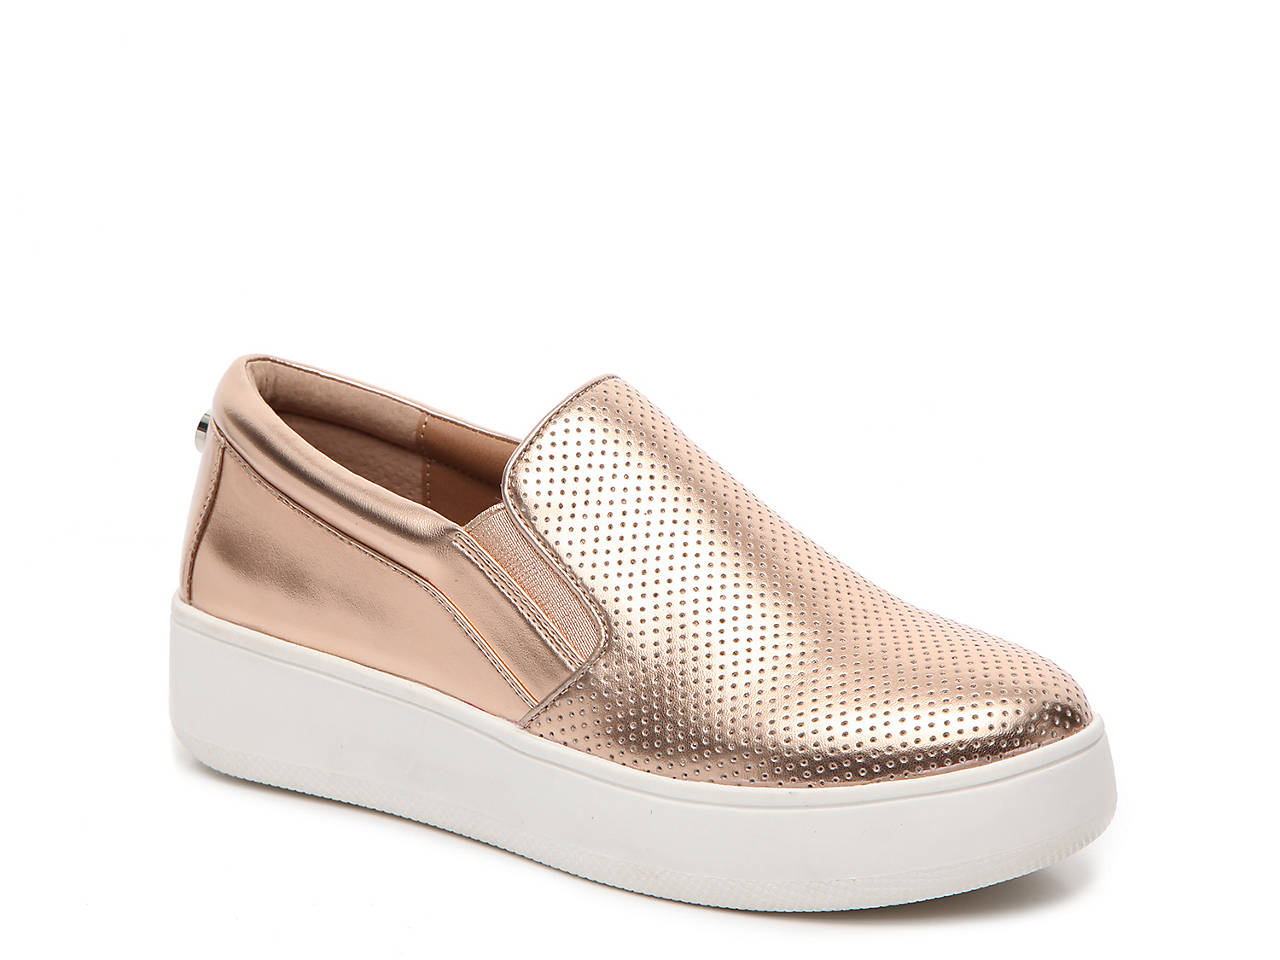 add6b5bd180a Steve Madden Genette Platform Slip-On Sneaker Women s Shoes